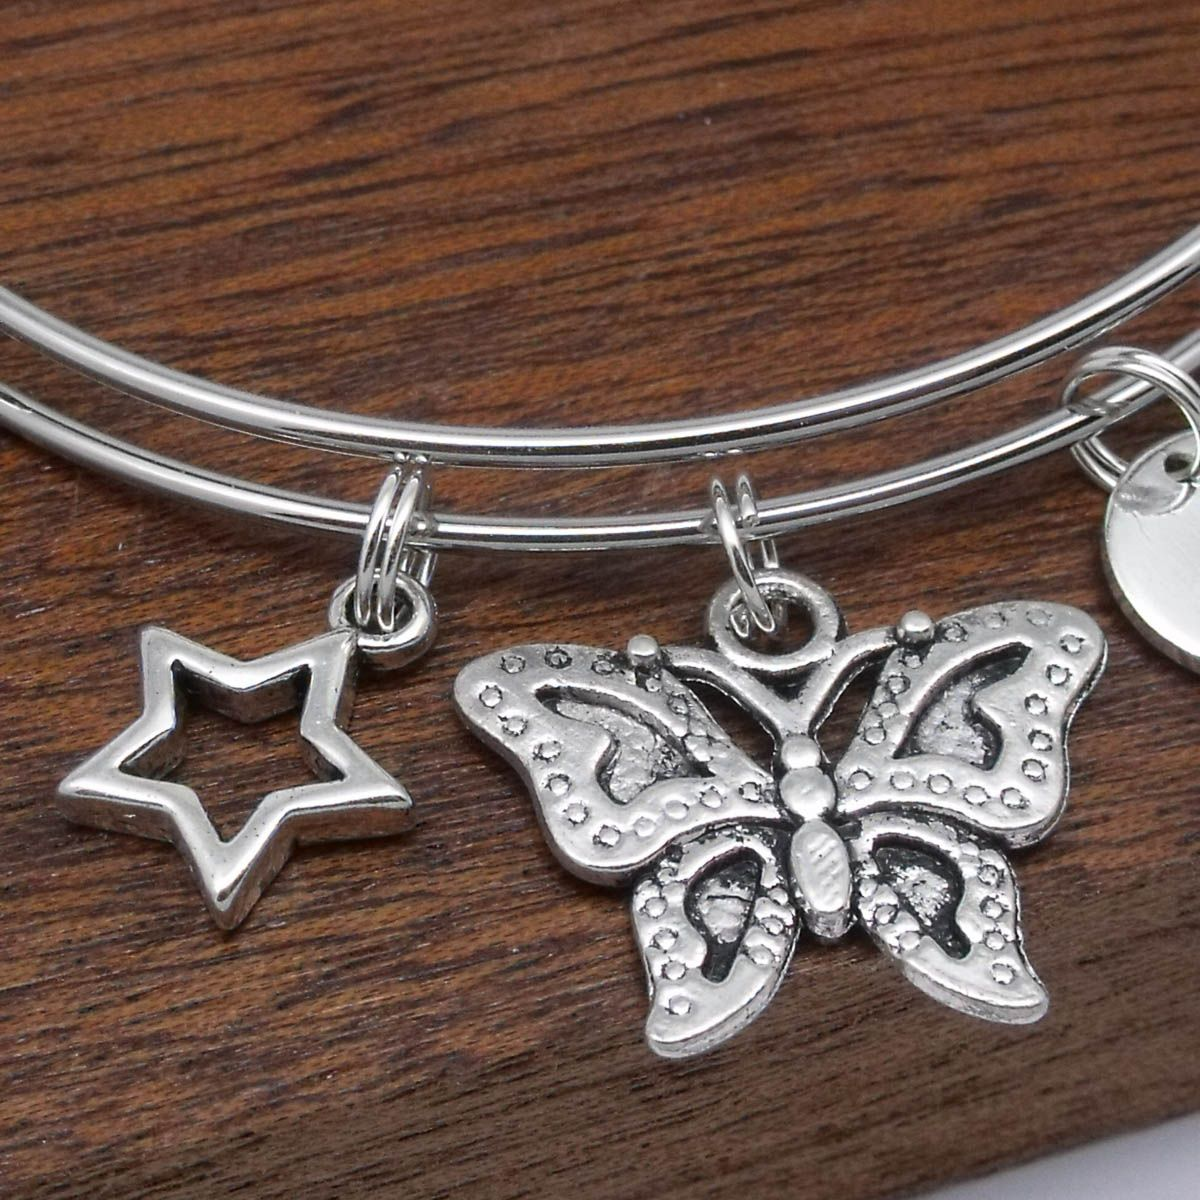 Butterfly heart star initial charm bracelet butterfly heart star initial charm bracelet mozeypictures Image collections